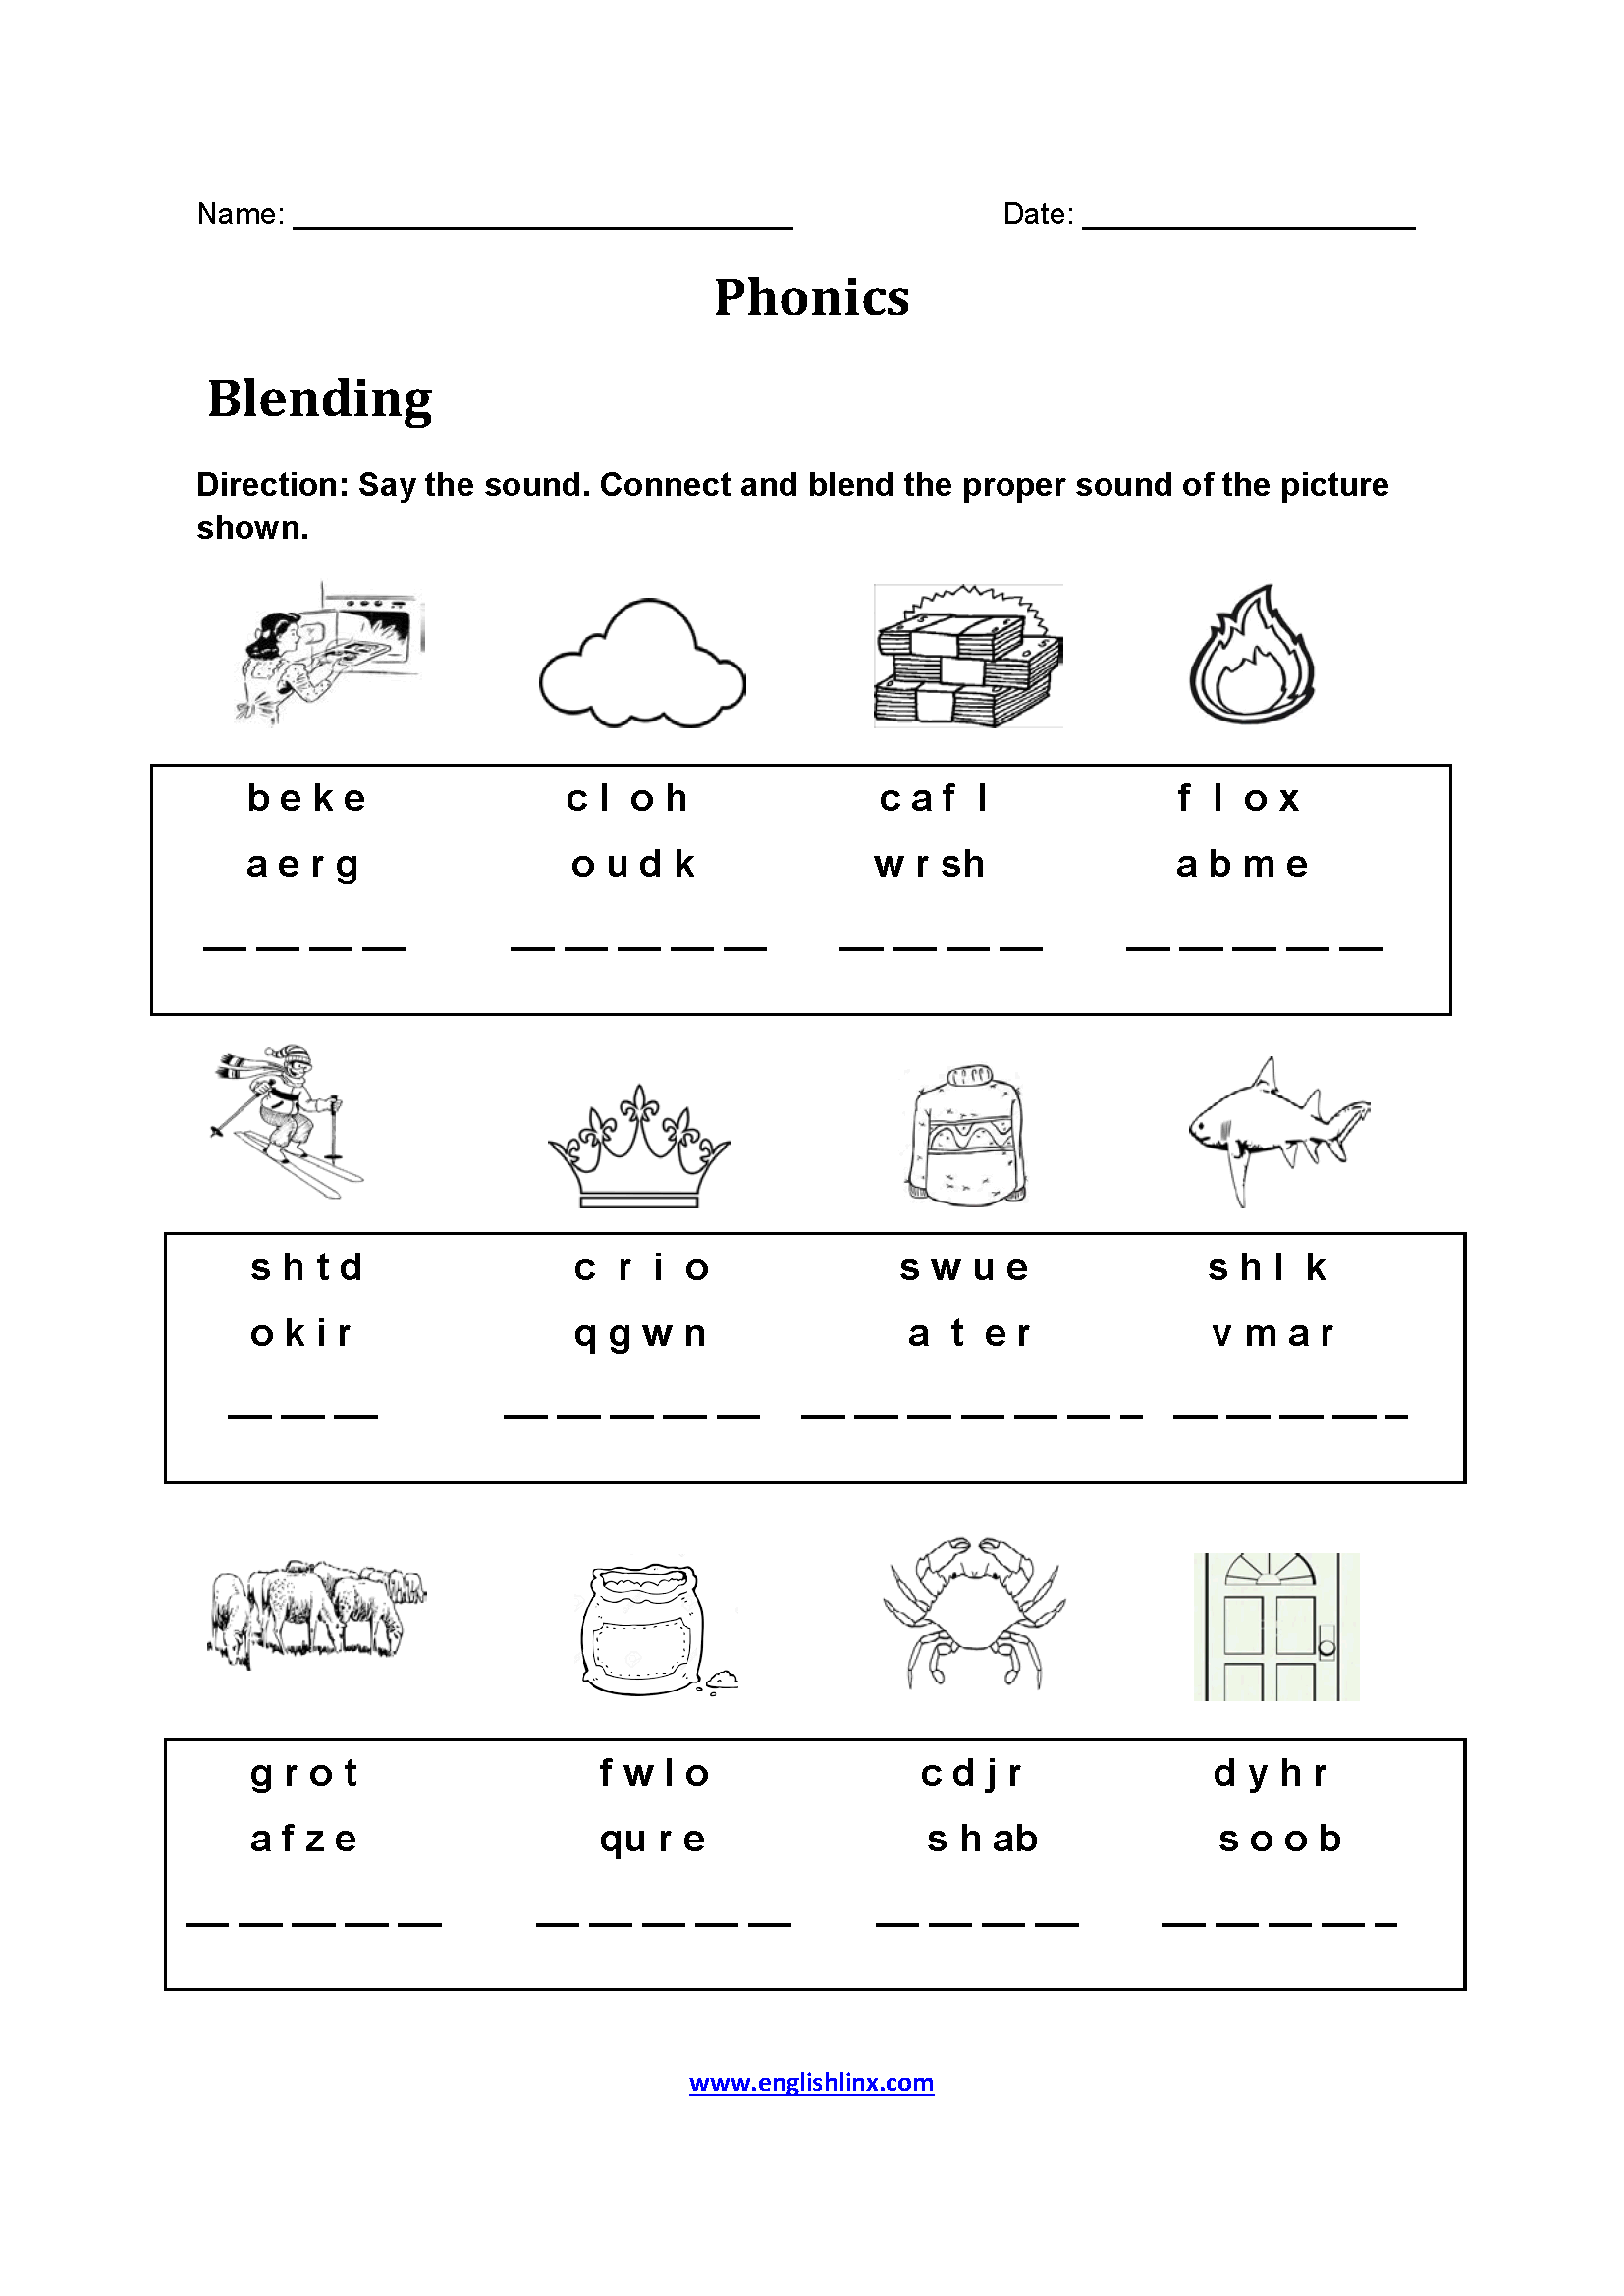 image relating to Printable Phonic Worksheets named  Phonics Worksheets